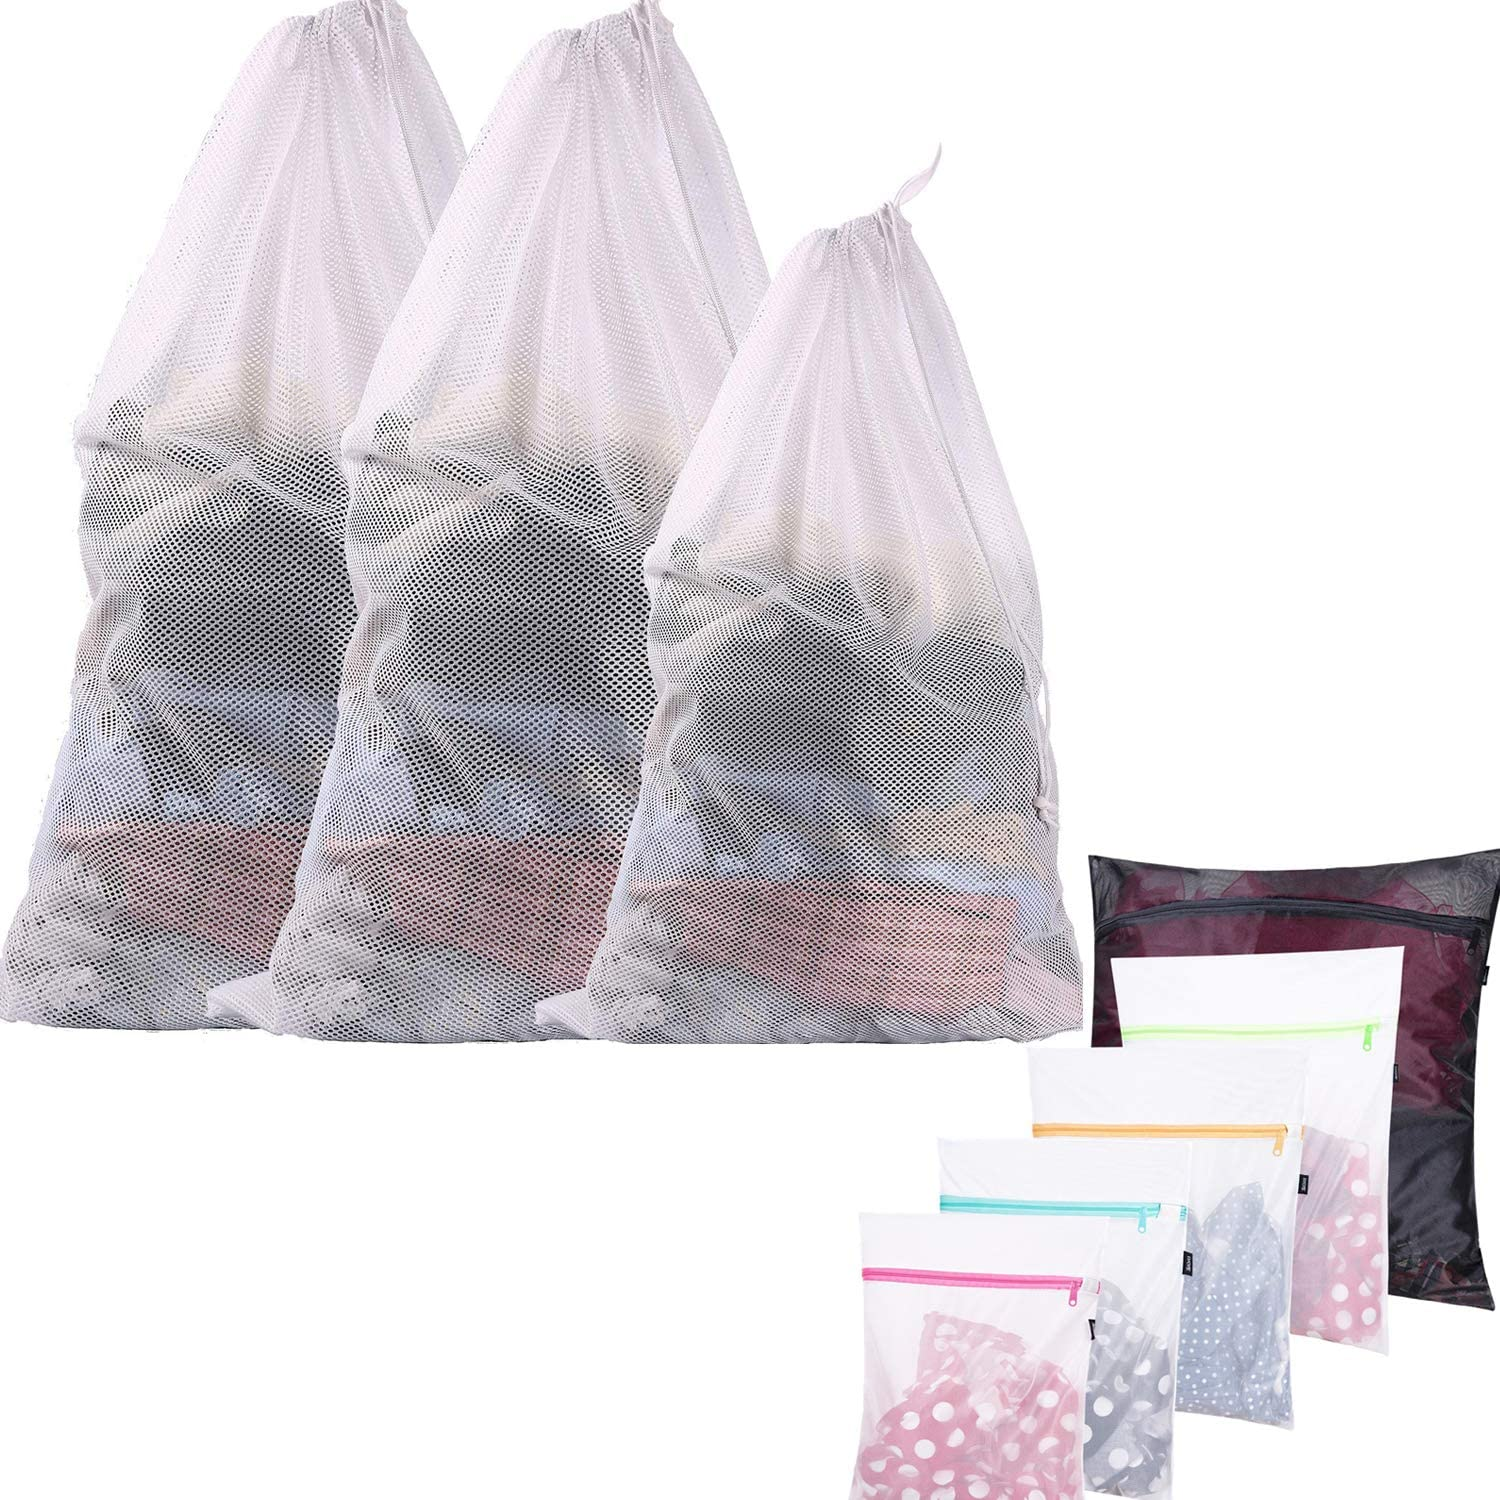 BAGAIL Pack of 50 Velvet Hangers and 5 Pieces Mesh Laundry Bags for Your Washing and Hanging Needs